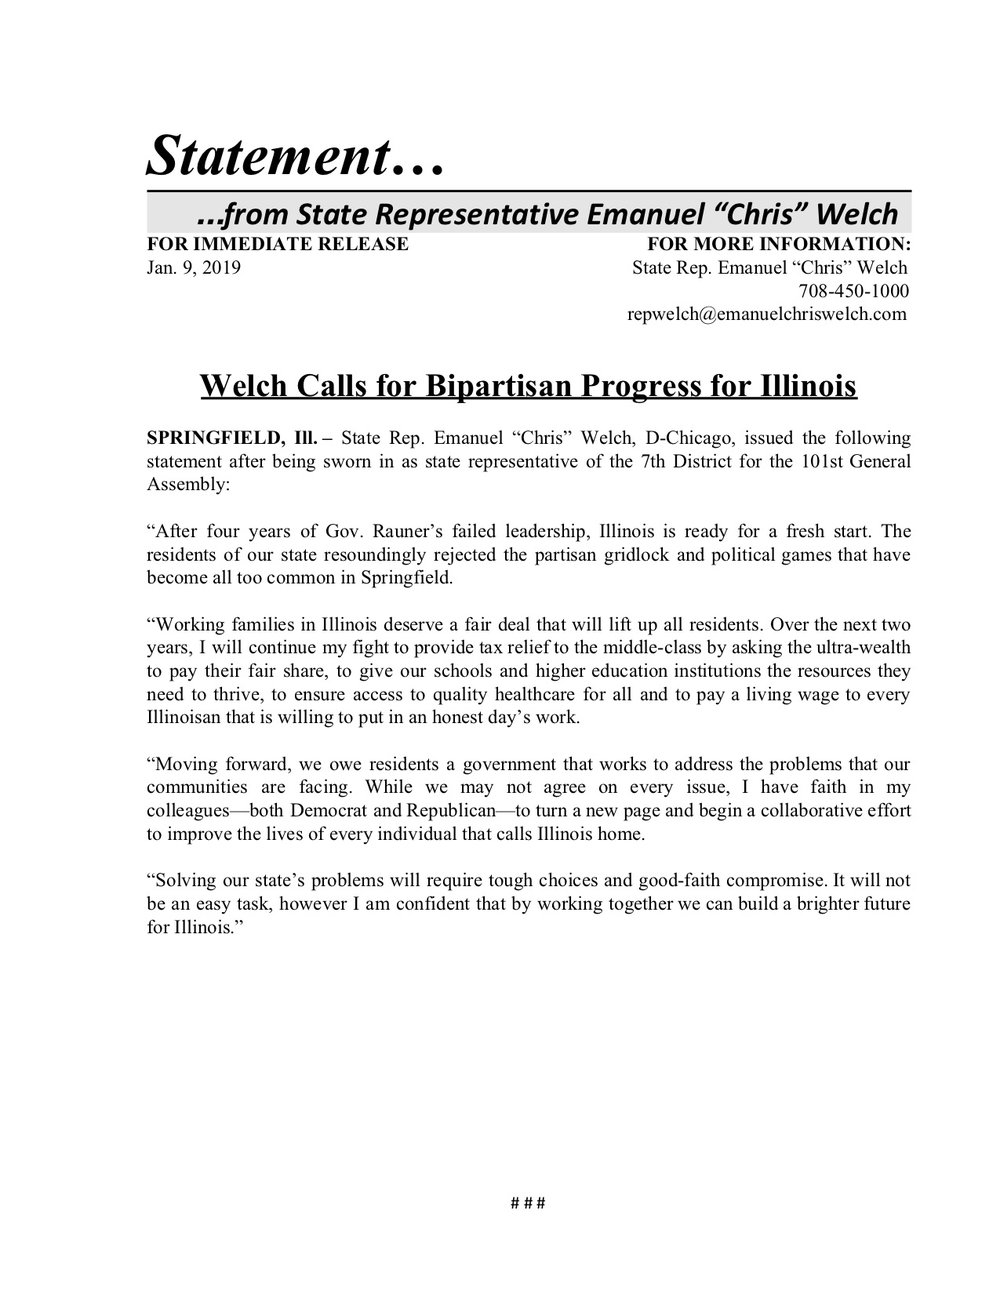 Statement: Welch Calls for Bipartisan Progress for Illinois  (January 9, 2019)